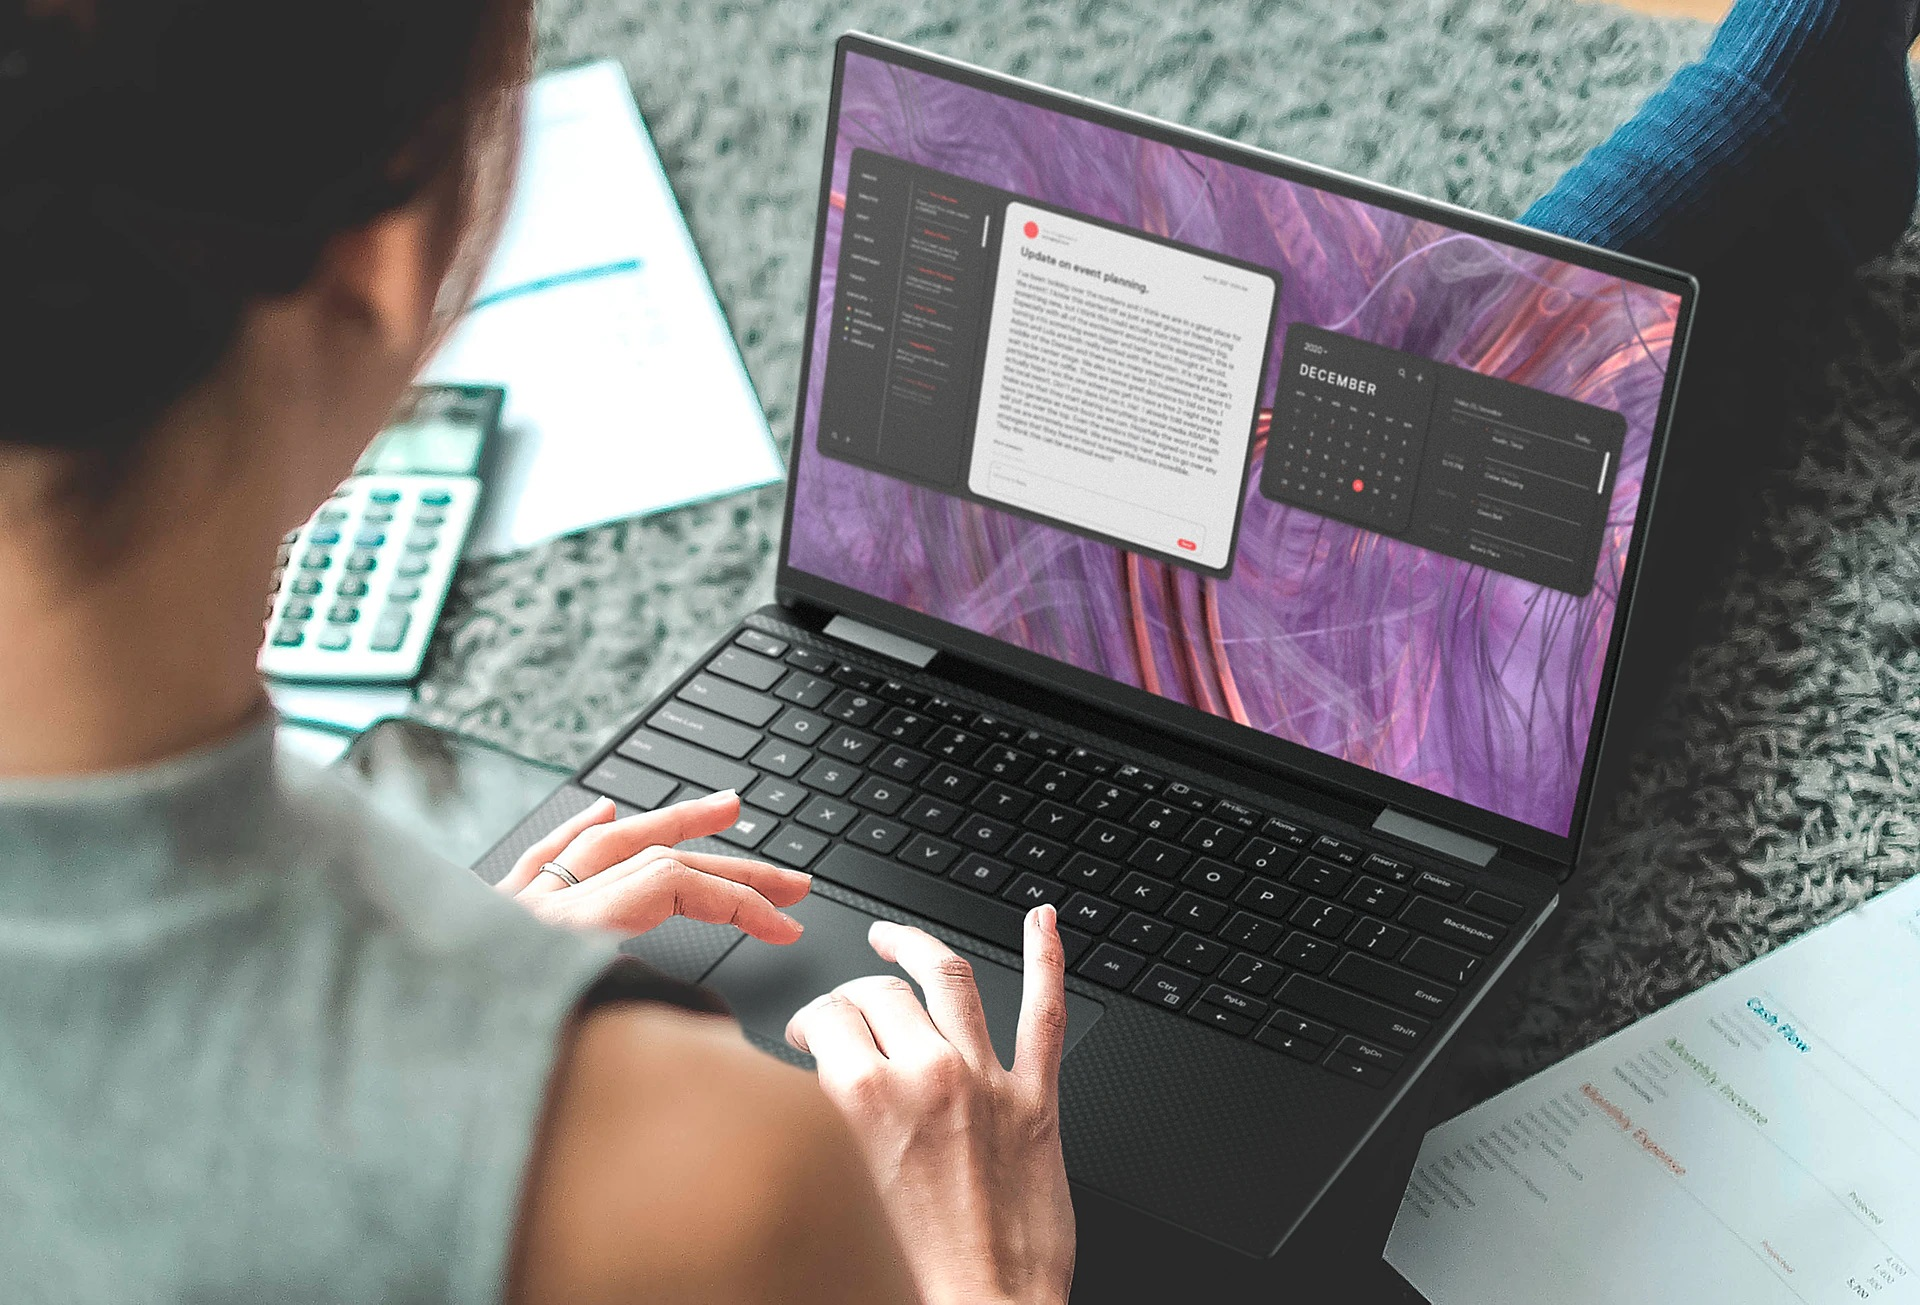 The Dell XPS 13 9310 2-in-1 is both a minor and major upgrade over the older XPS 13 7390 2-in-1